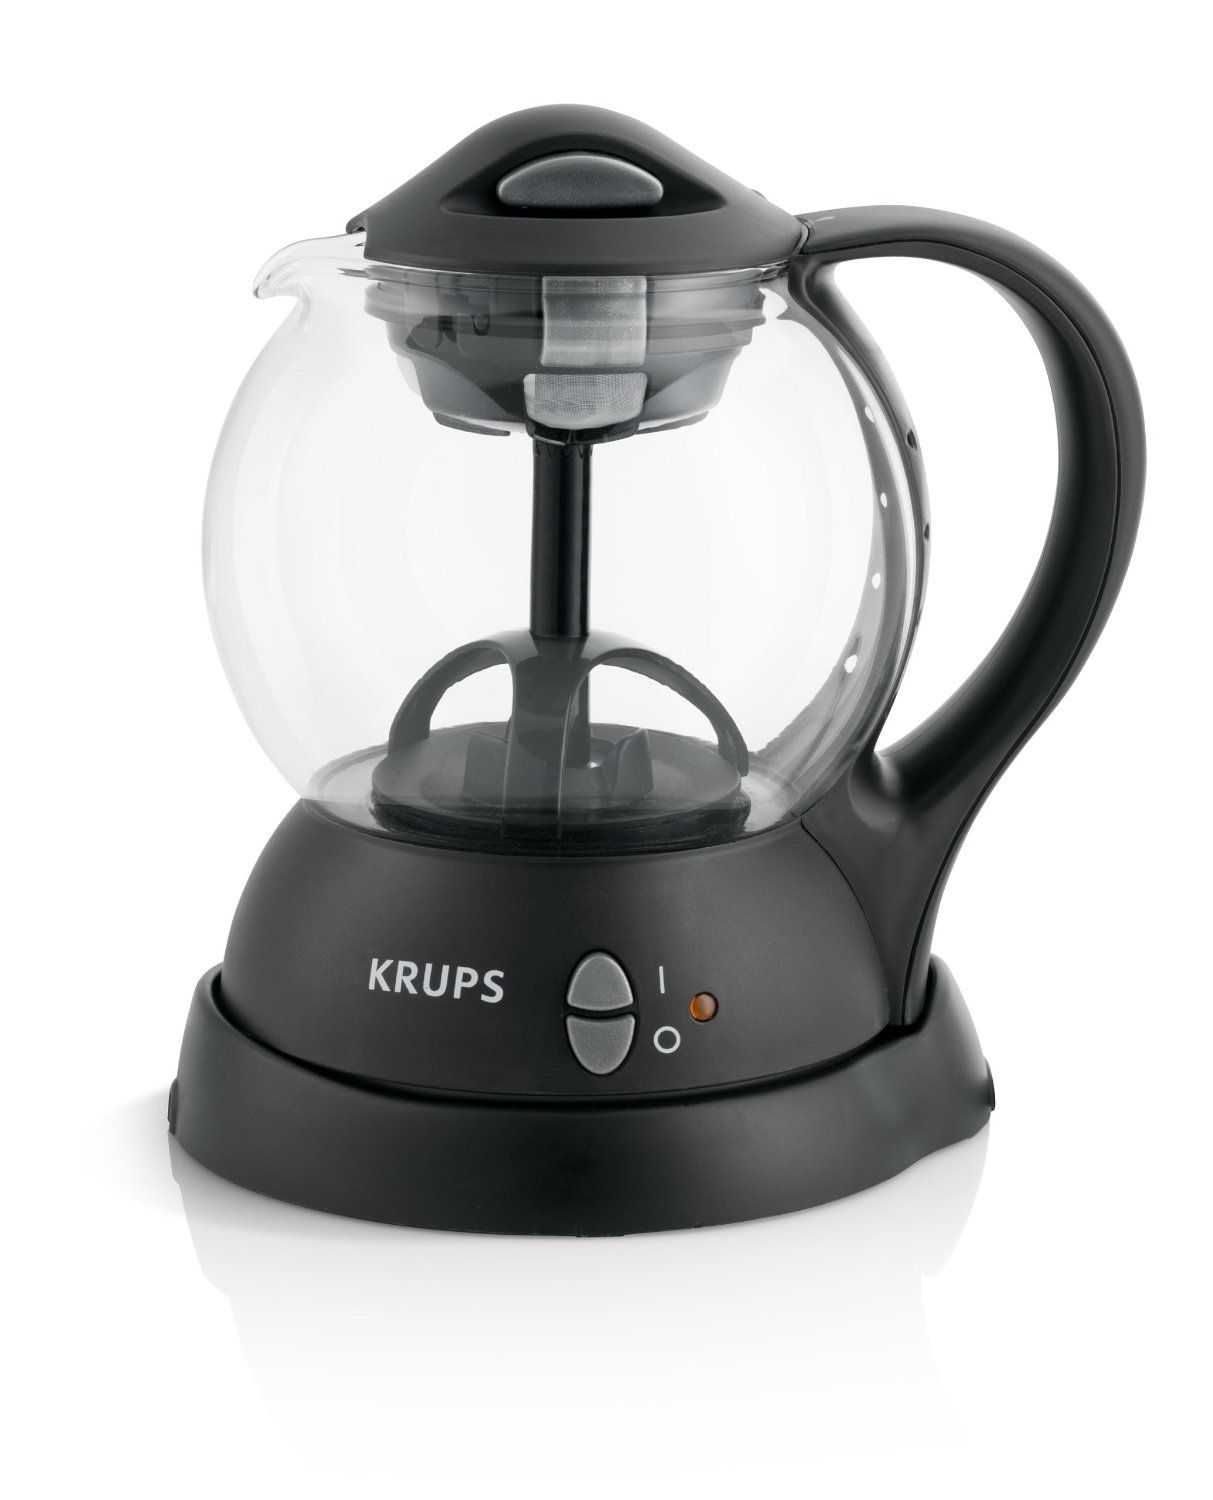 Amazon.com: KRUPS FL701850 Personal Tea Kettle with integrated infusion basket for loose tea and tea bags, Black: Kitchen & Dining